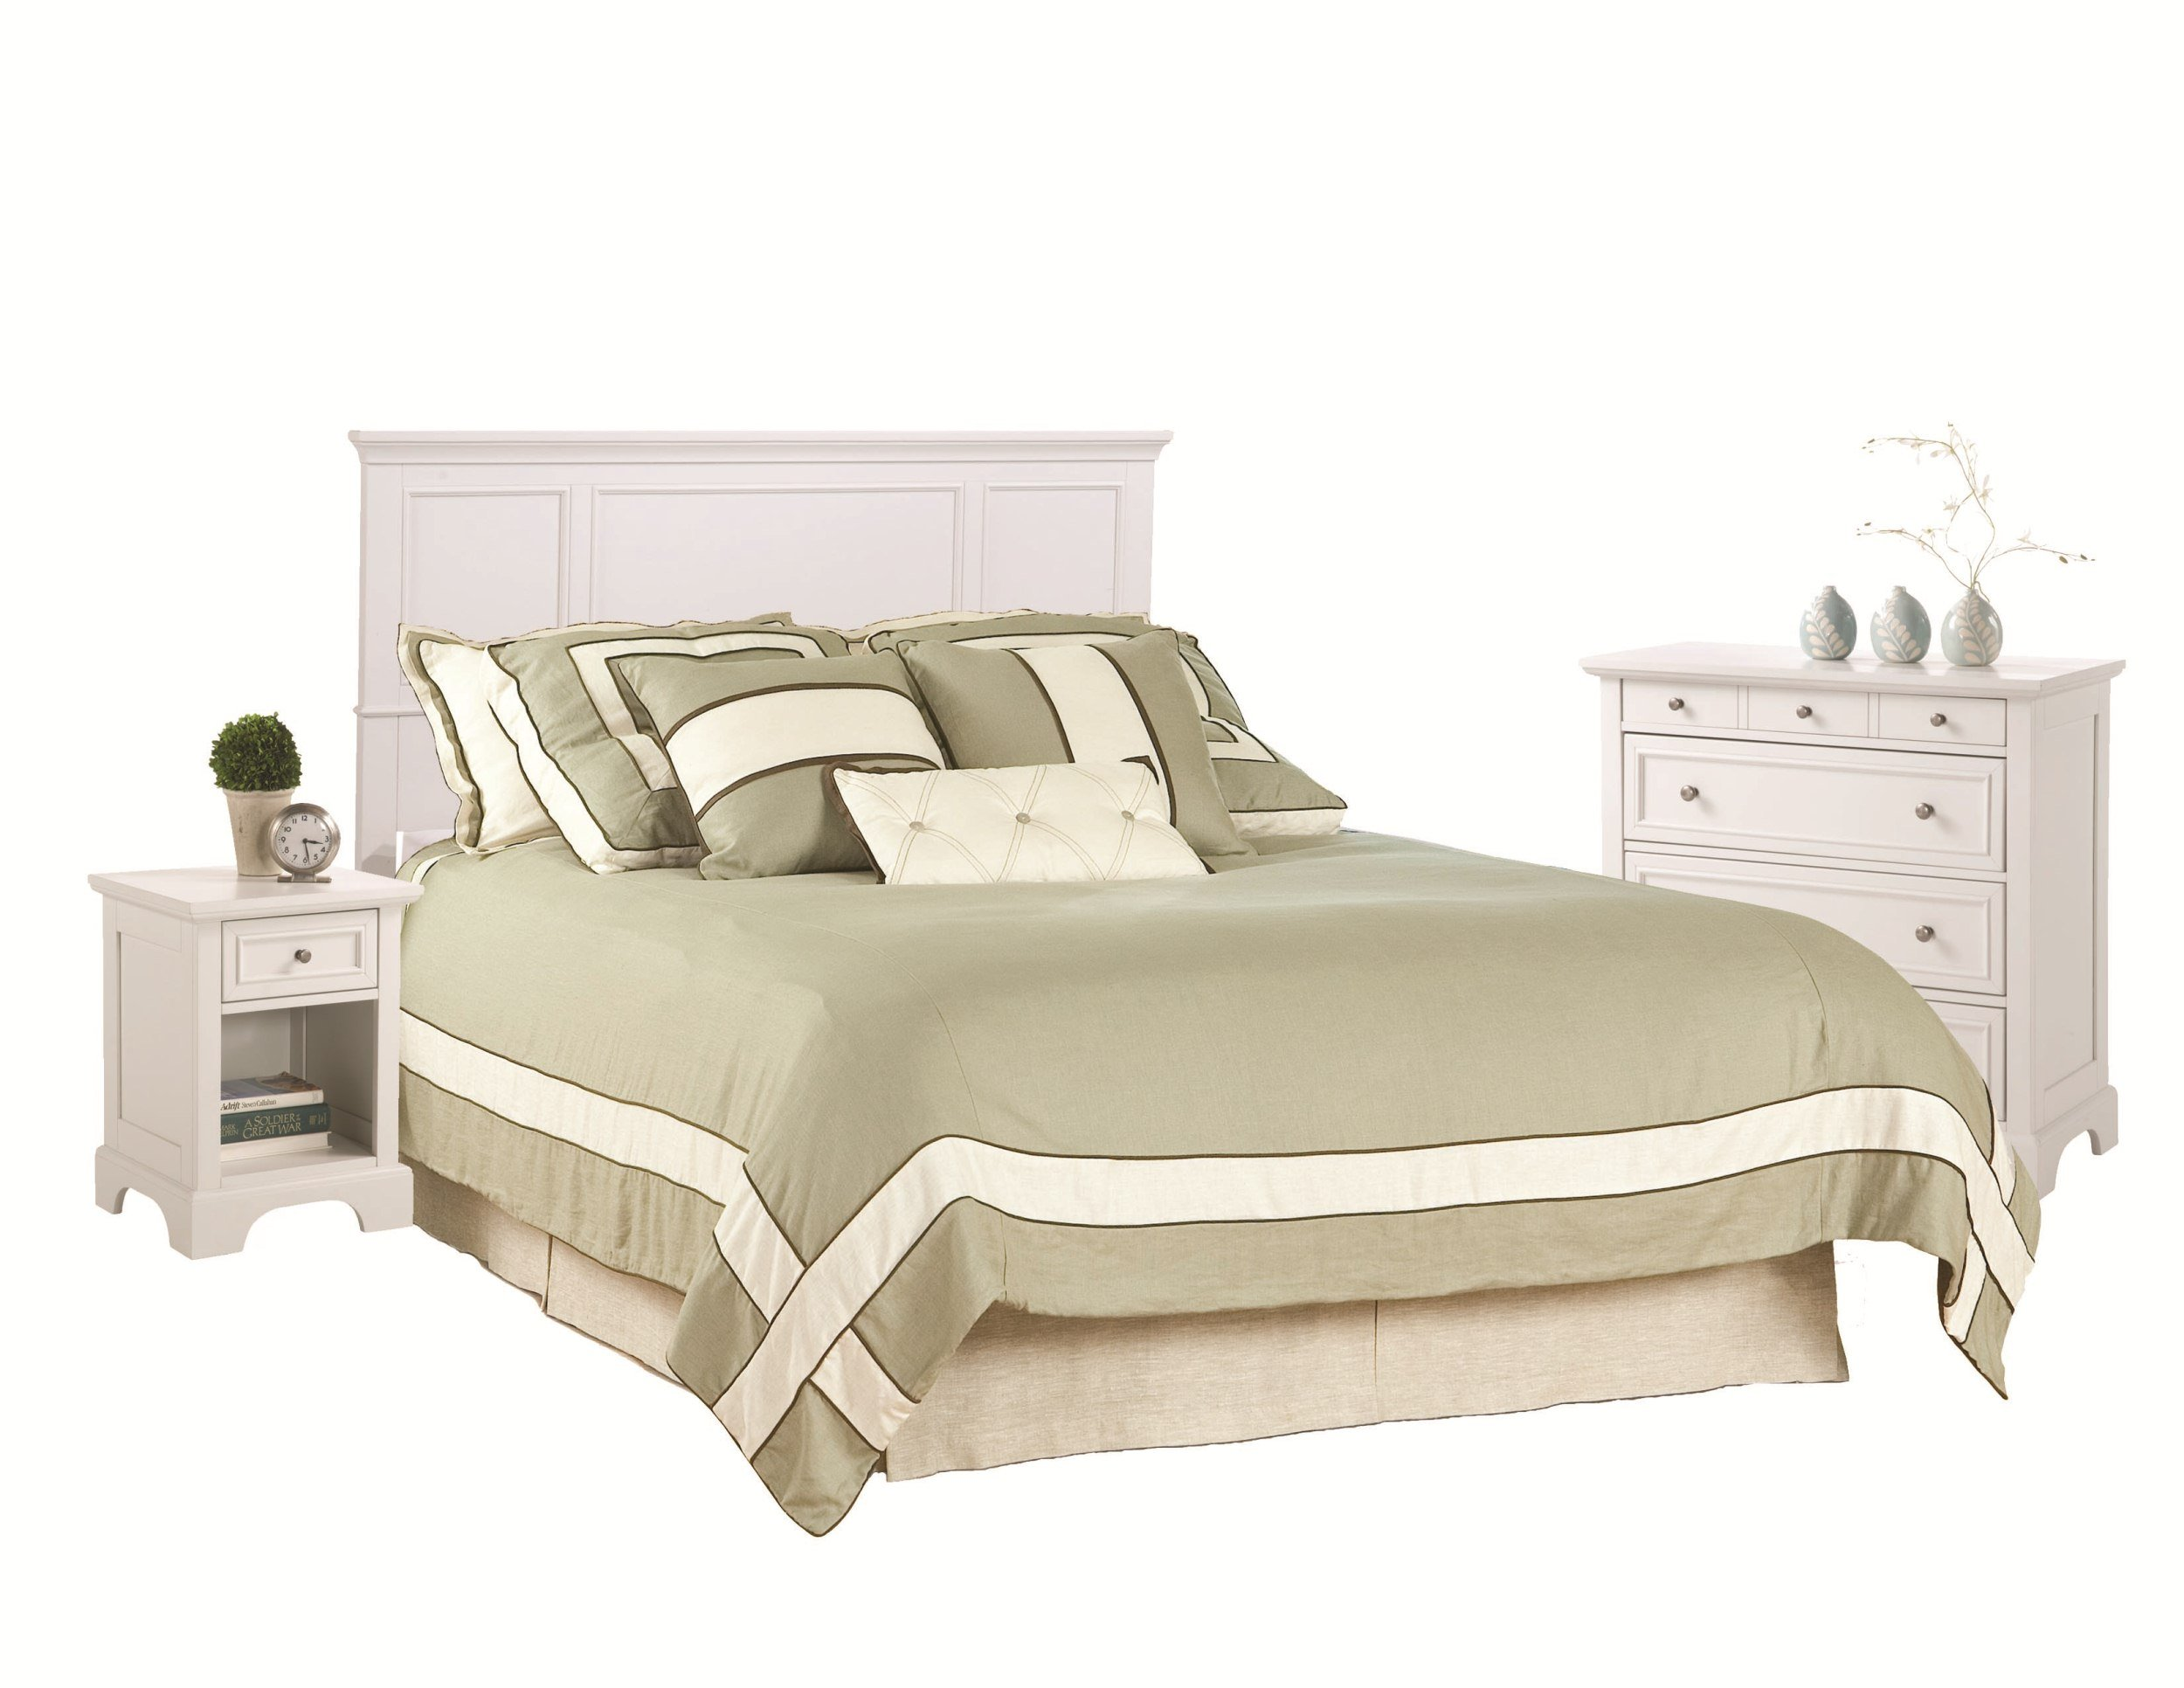 Home Styles 5530-5012 Naples Queen Headboard, Nightstand and Chest, White Finish